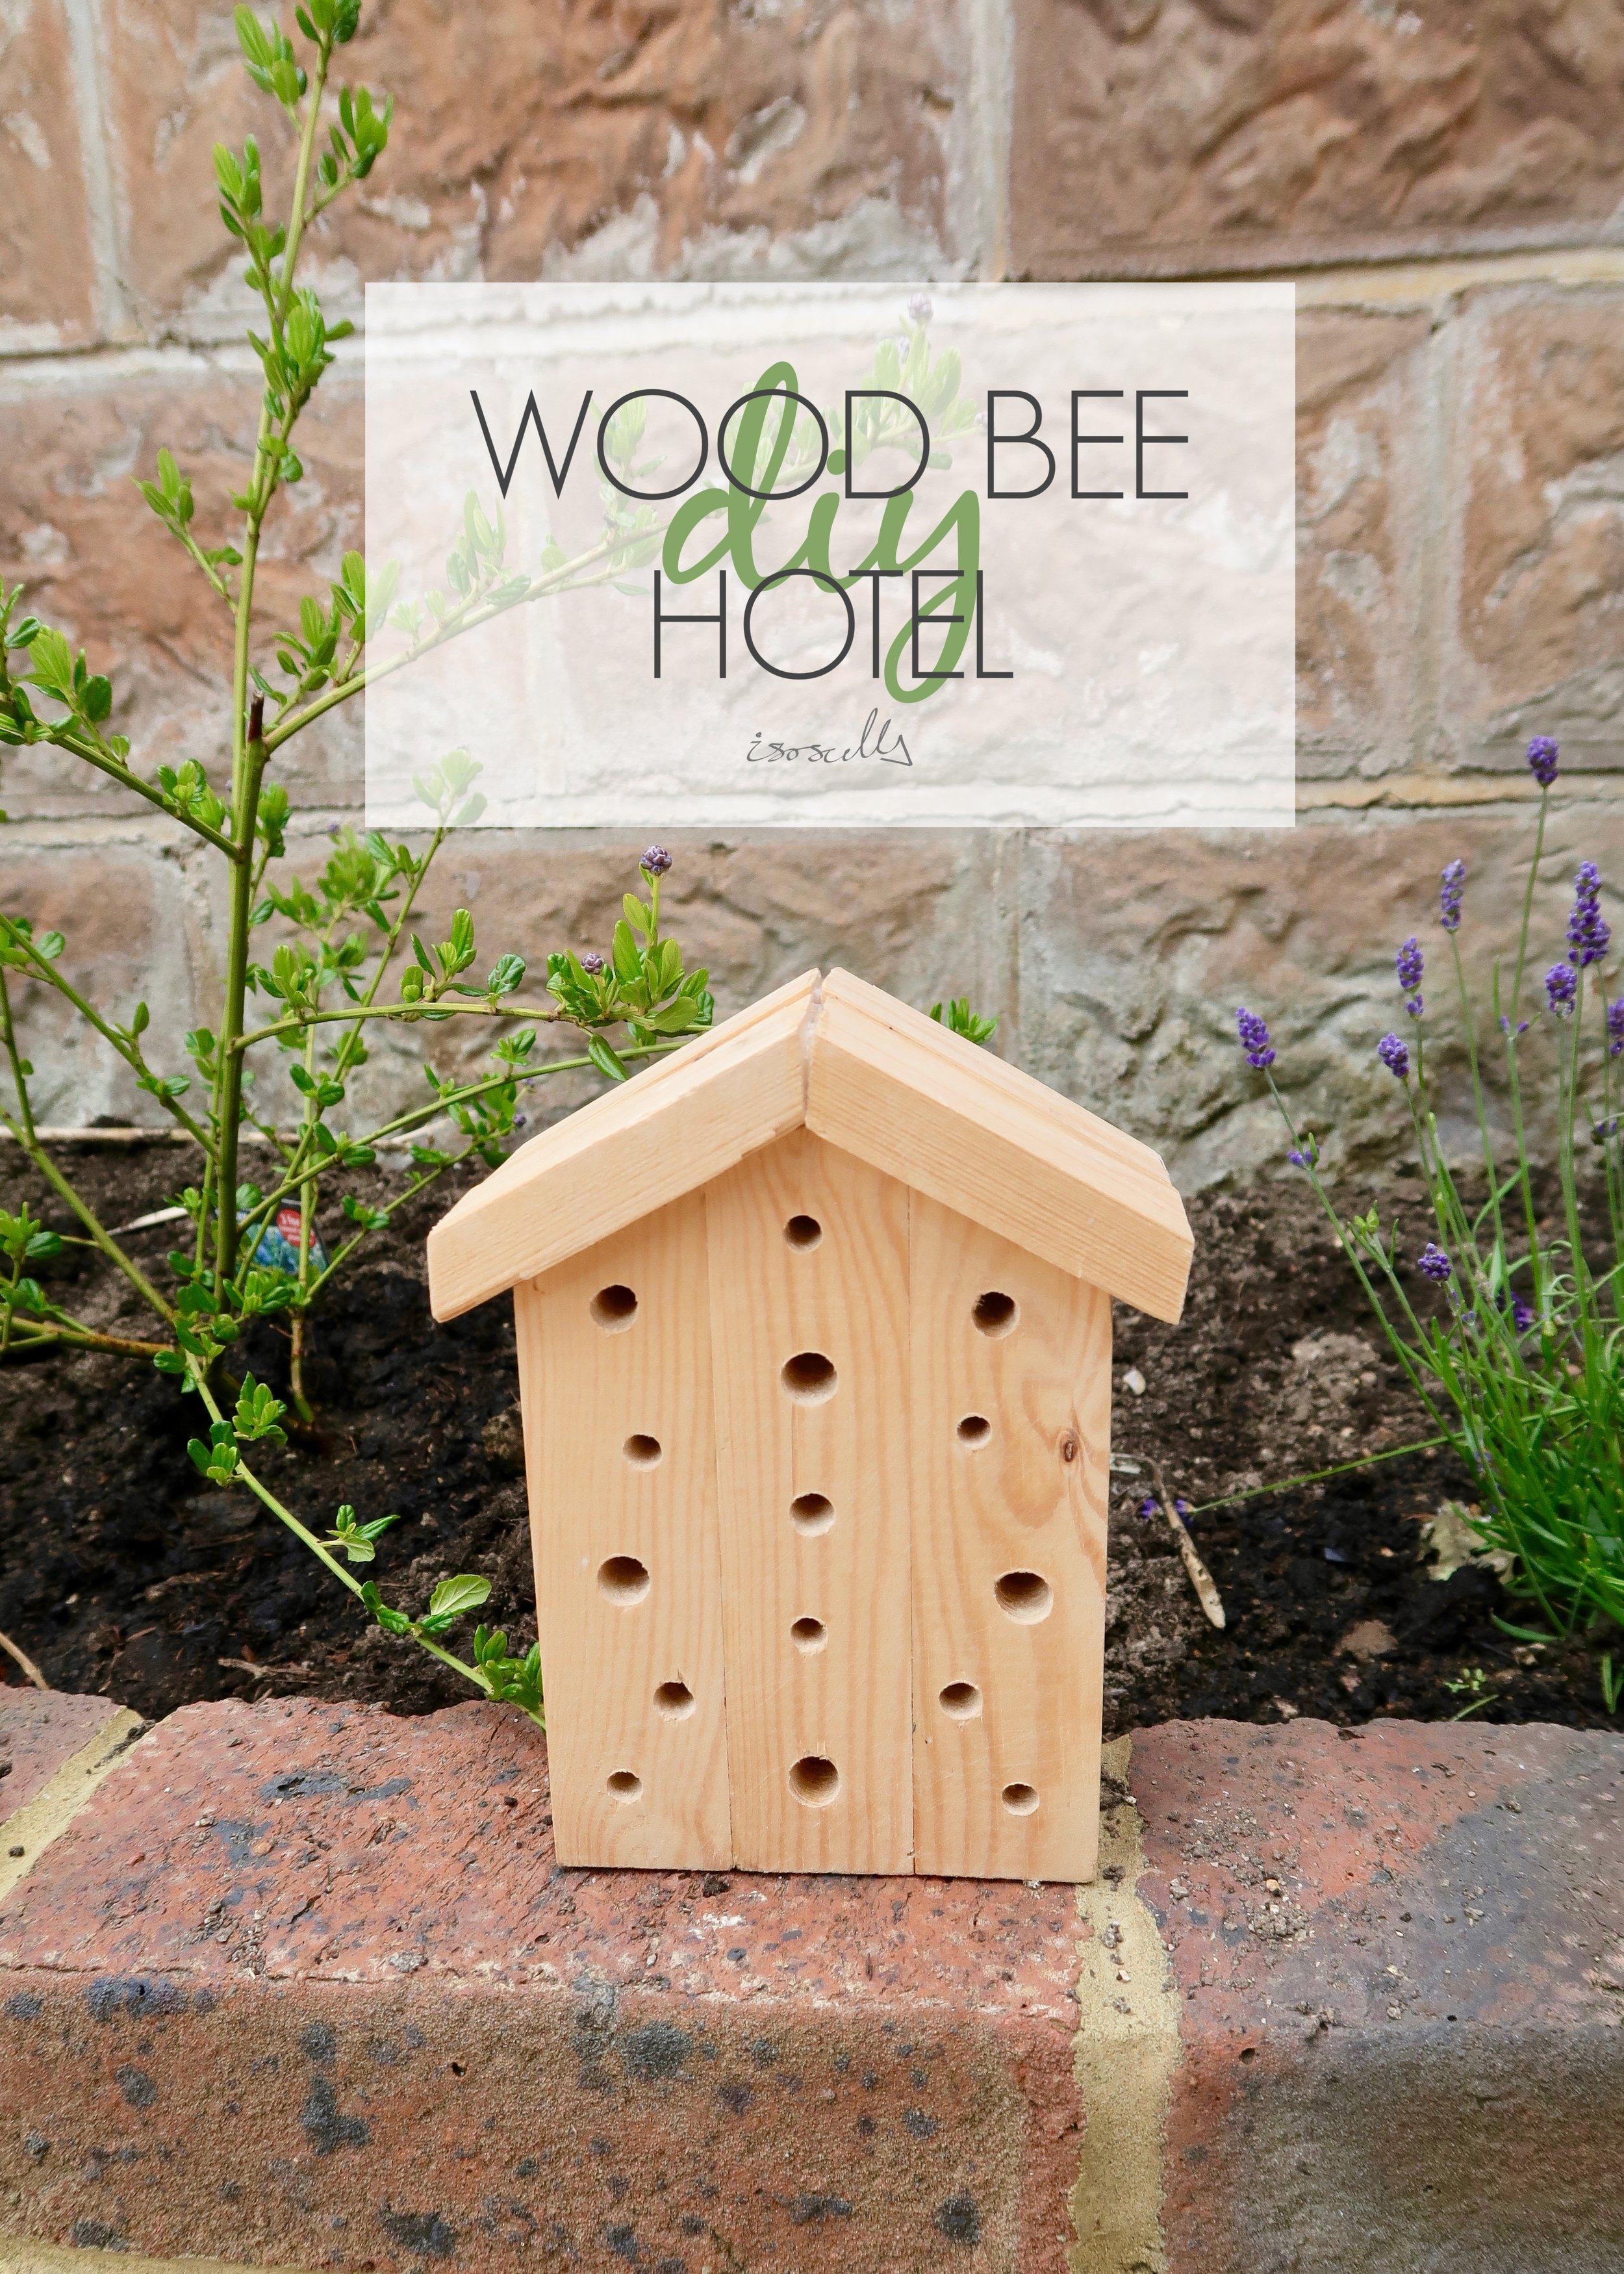 DIY Wooden Bee Hotel by Isoscella